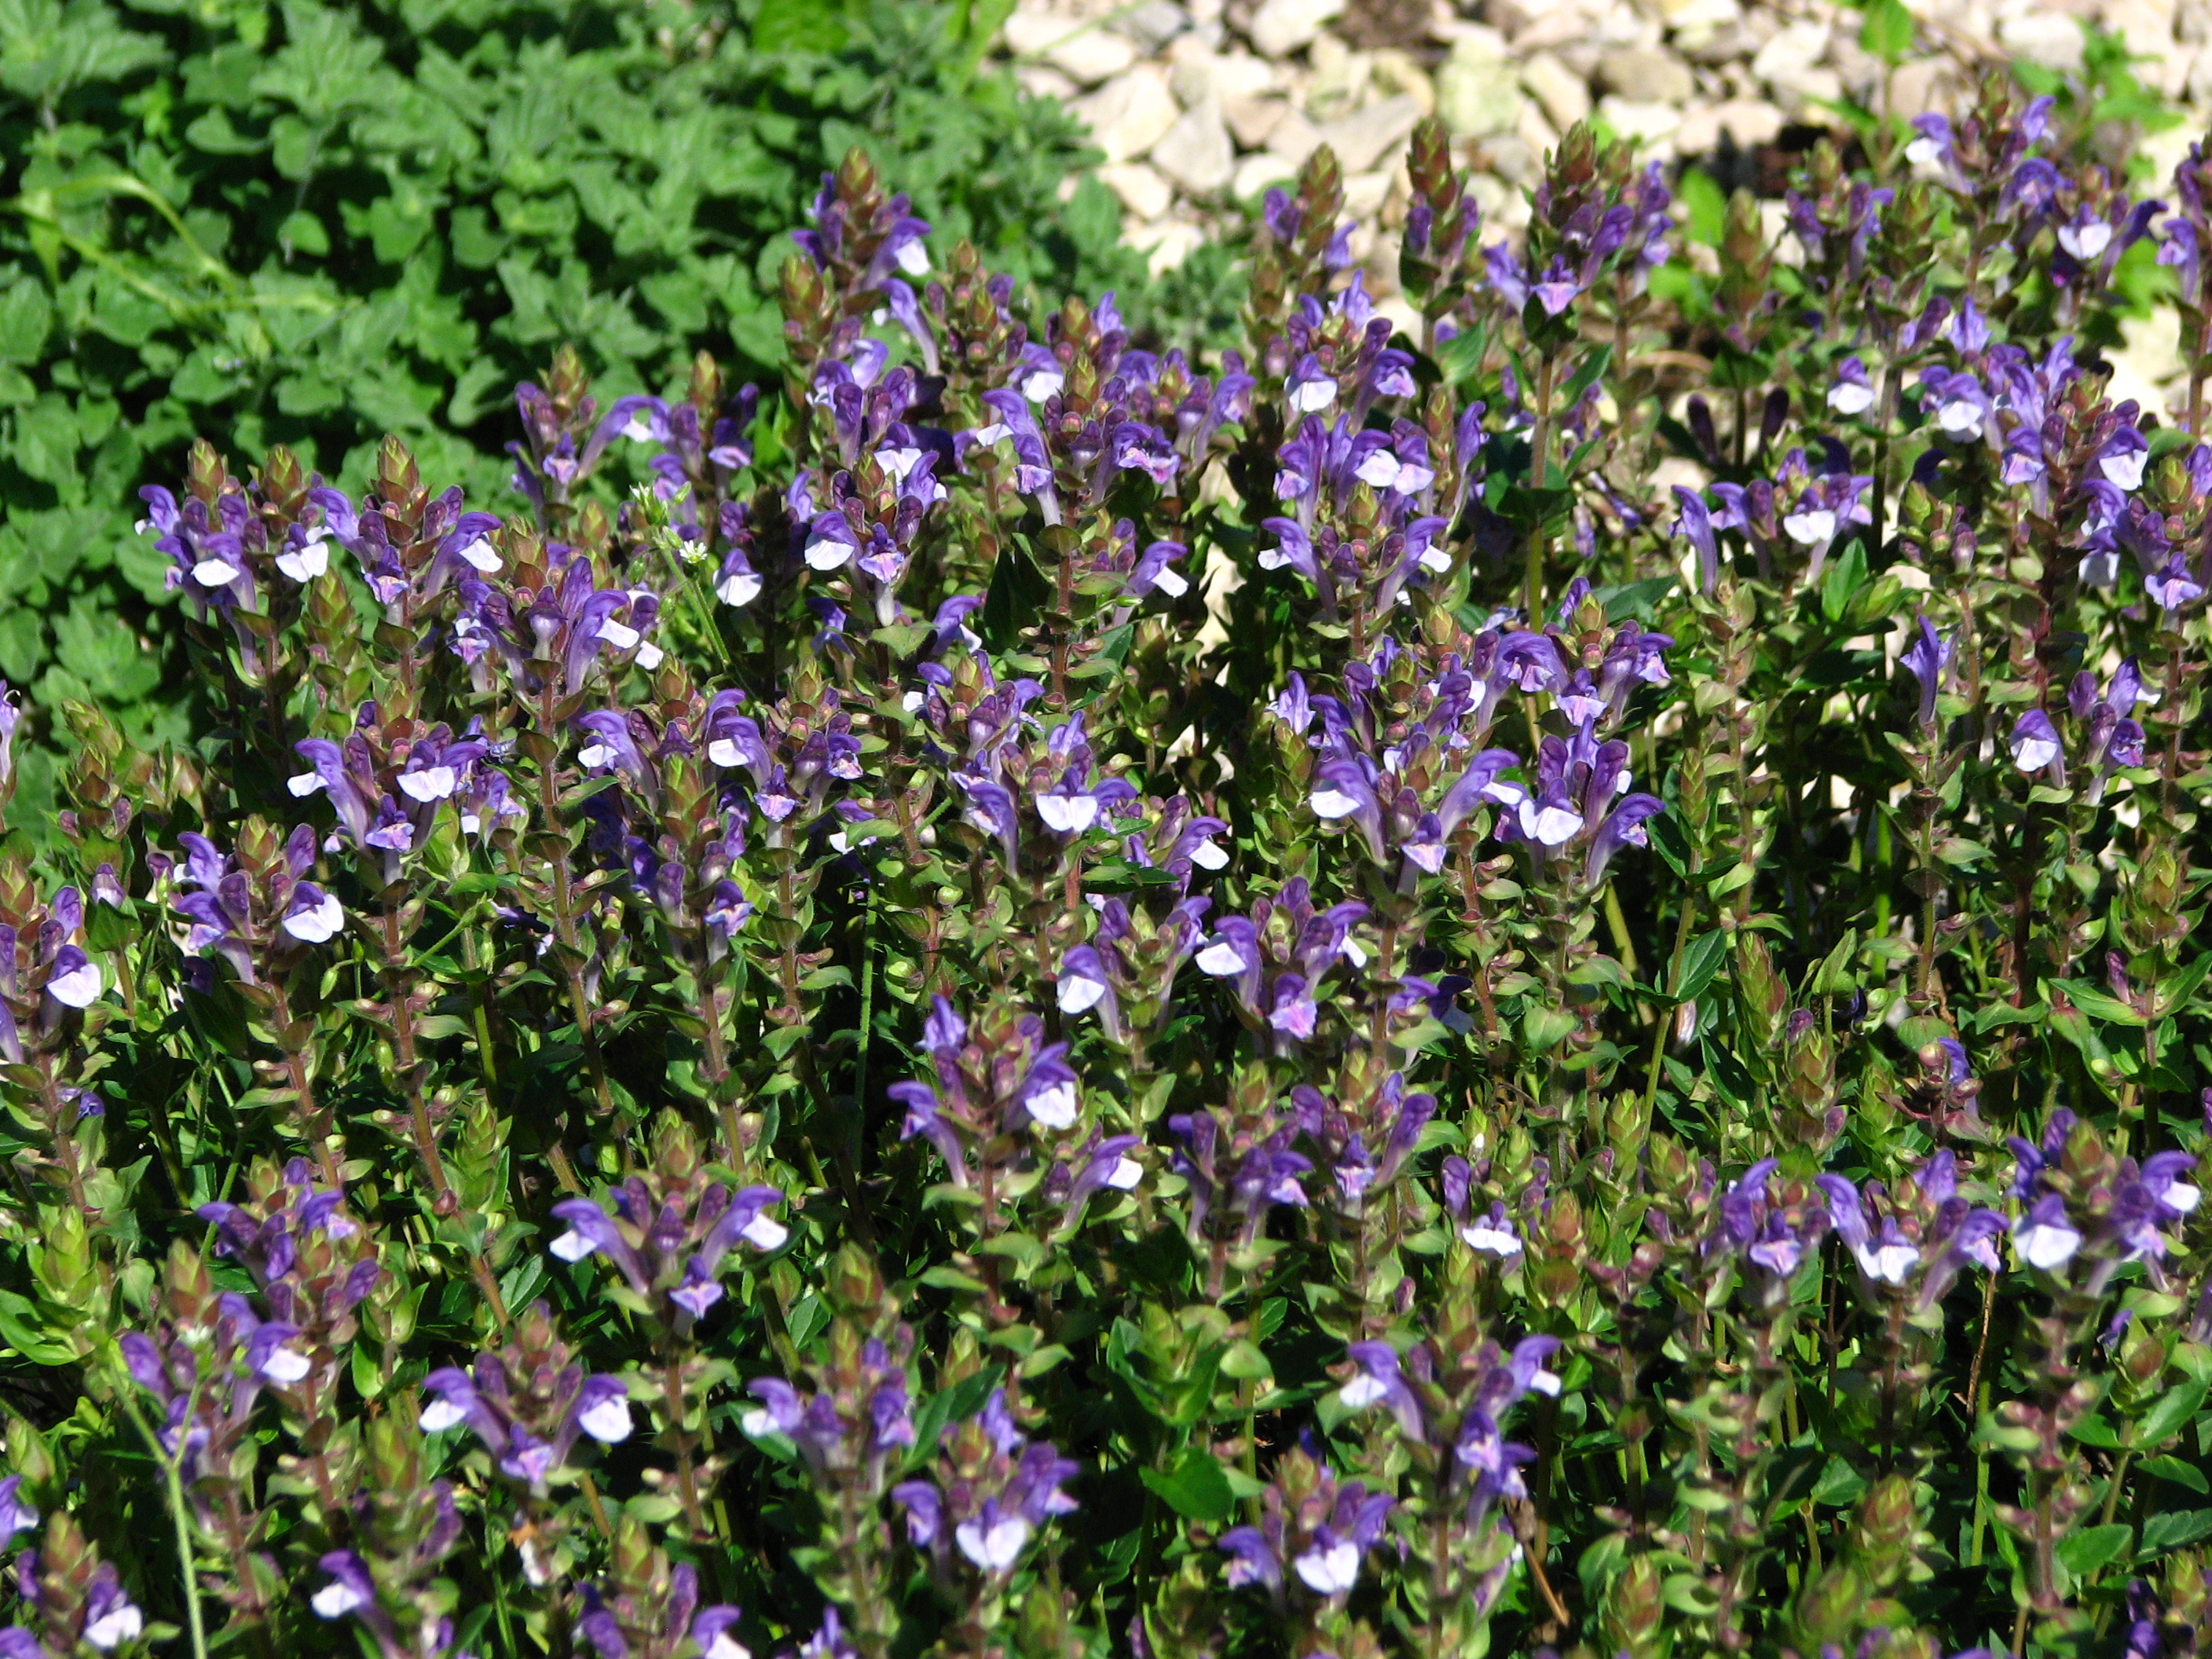 File:Scutellaria baicalensis 01.JPG - Wikimedia Commons: https://commons.wikimedia.org/wiki/File:Scutellaria_baicalensis_01.JPG